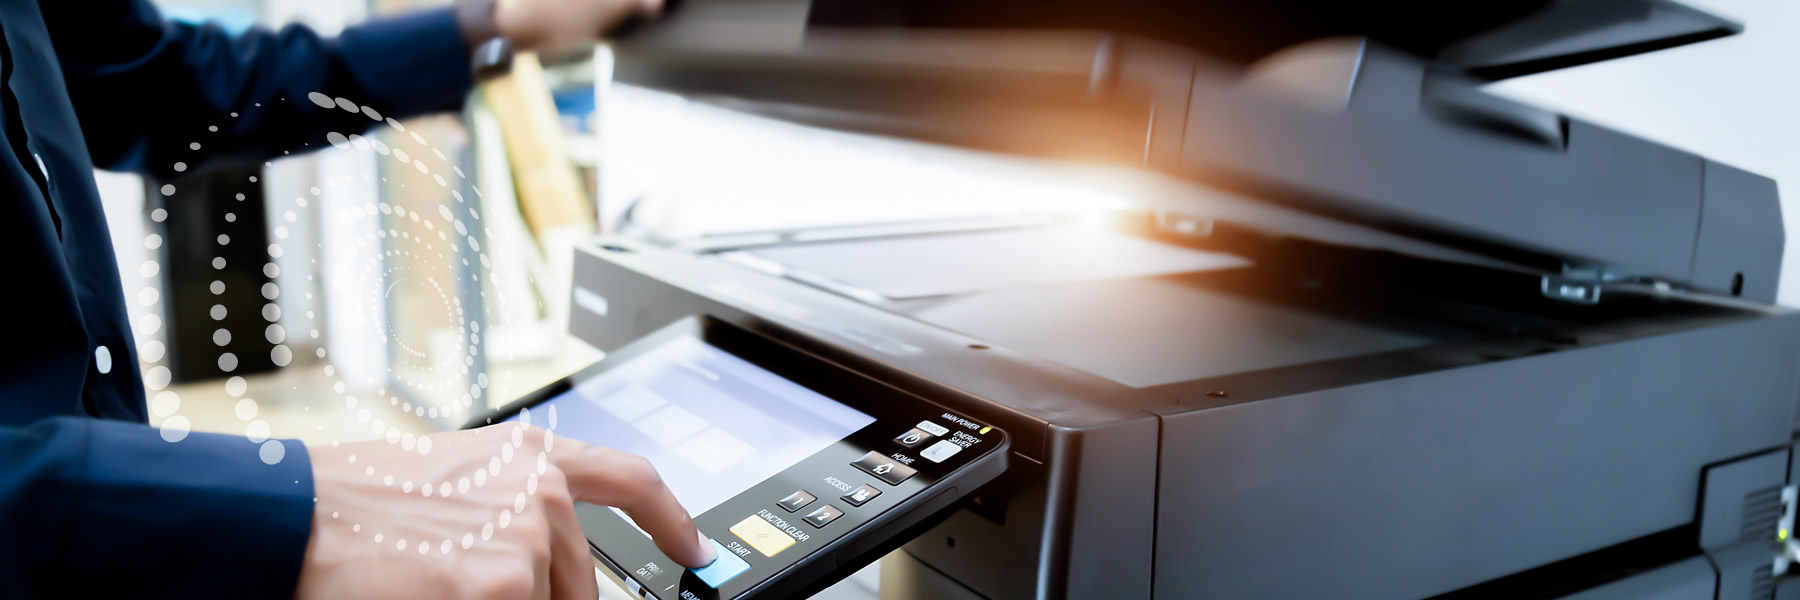 Future Digital Systems - Managed Print Systems